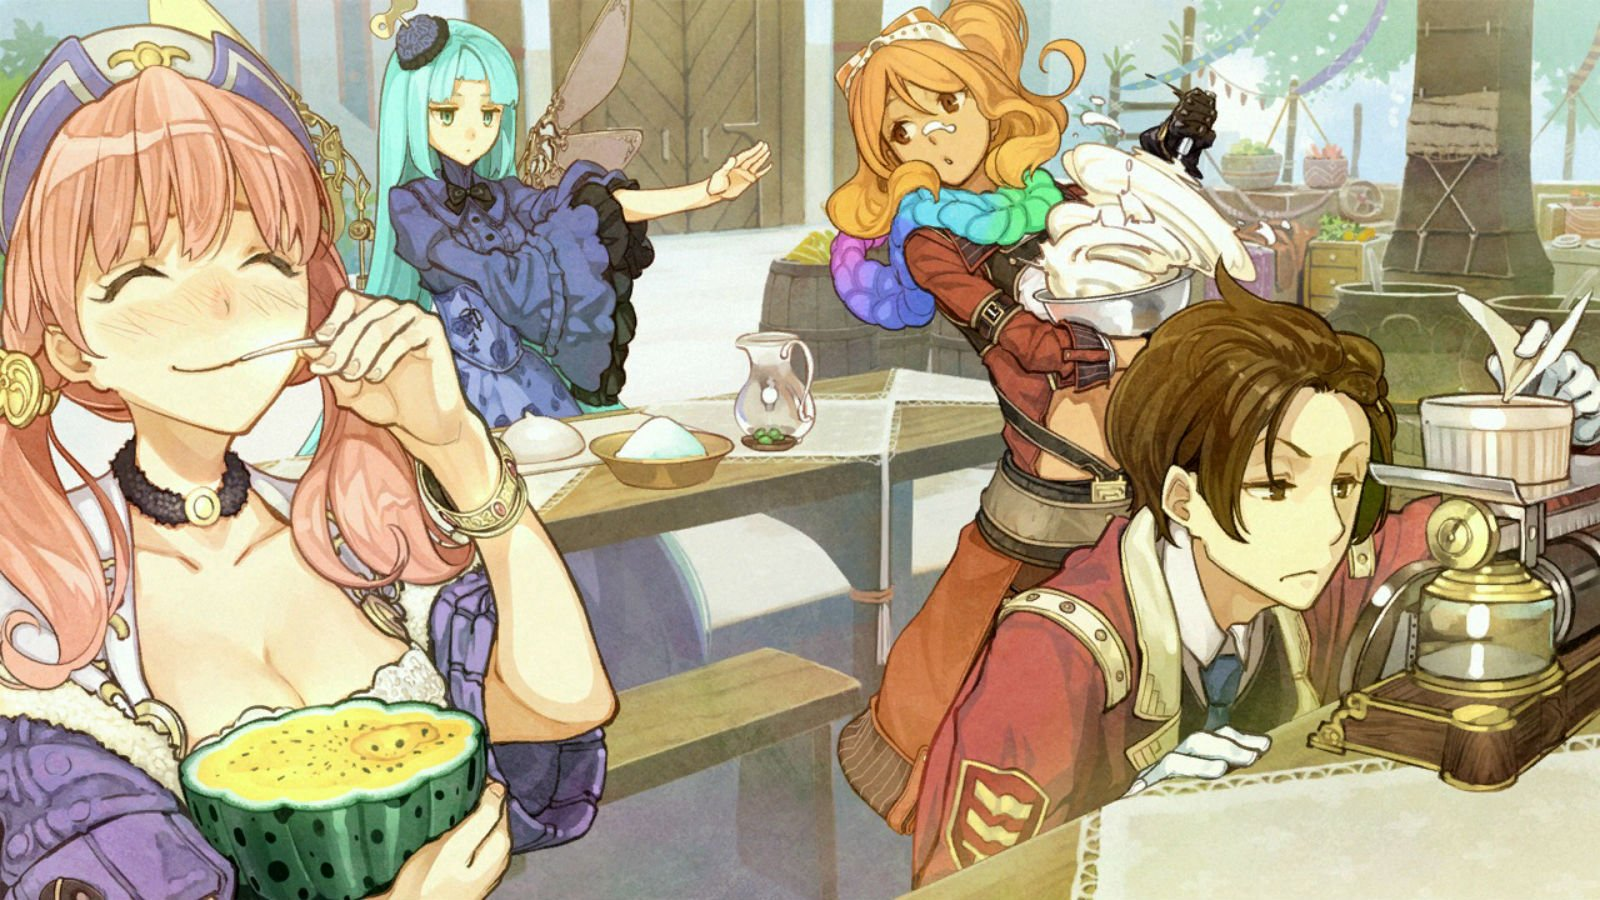 atelier shallie-alchemists of the dusk sea escha malier game cg jurie crotze odileia solle grumman